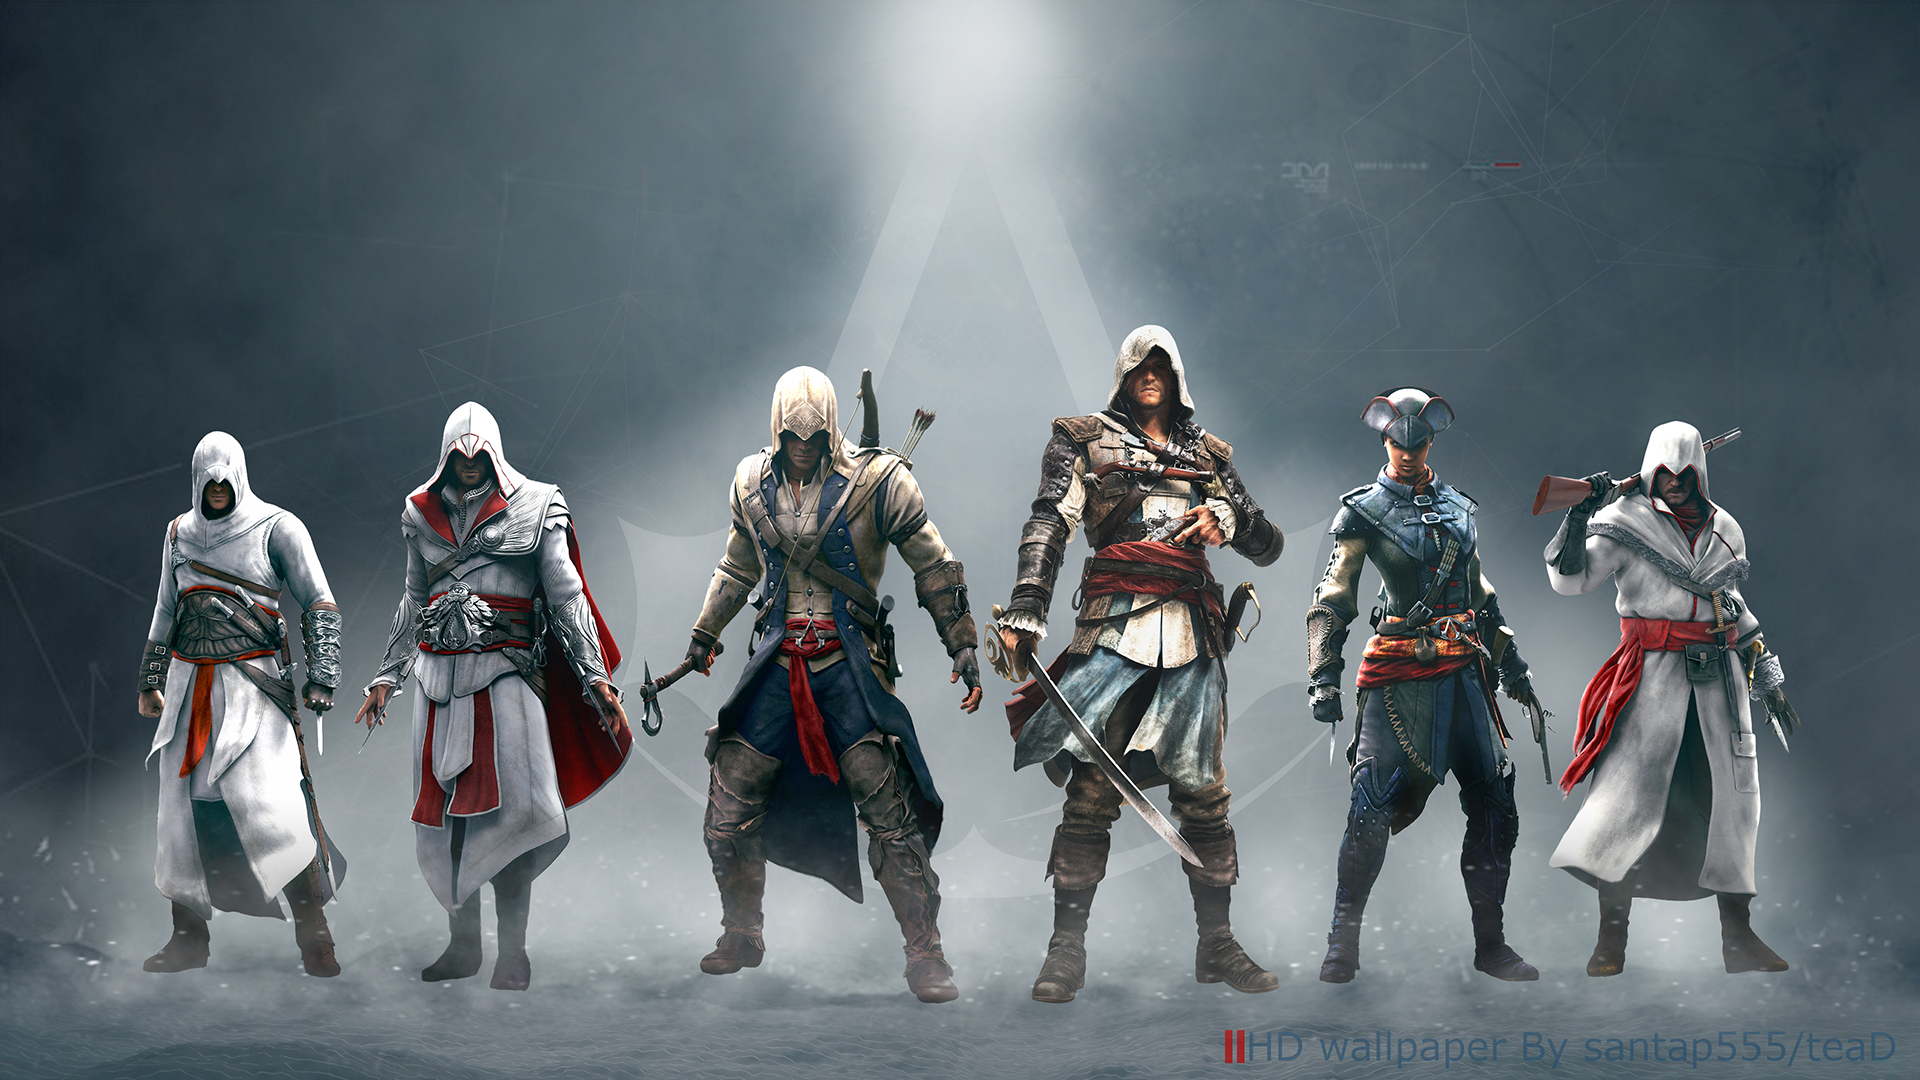 Assassin S Creed Wallpaper By Tead By Santap555 On Deviantart